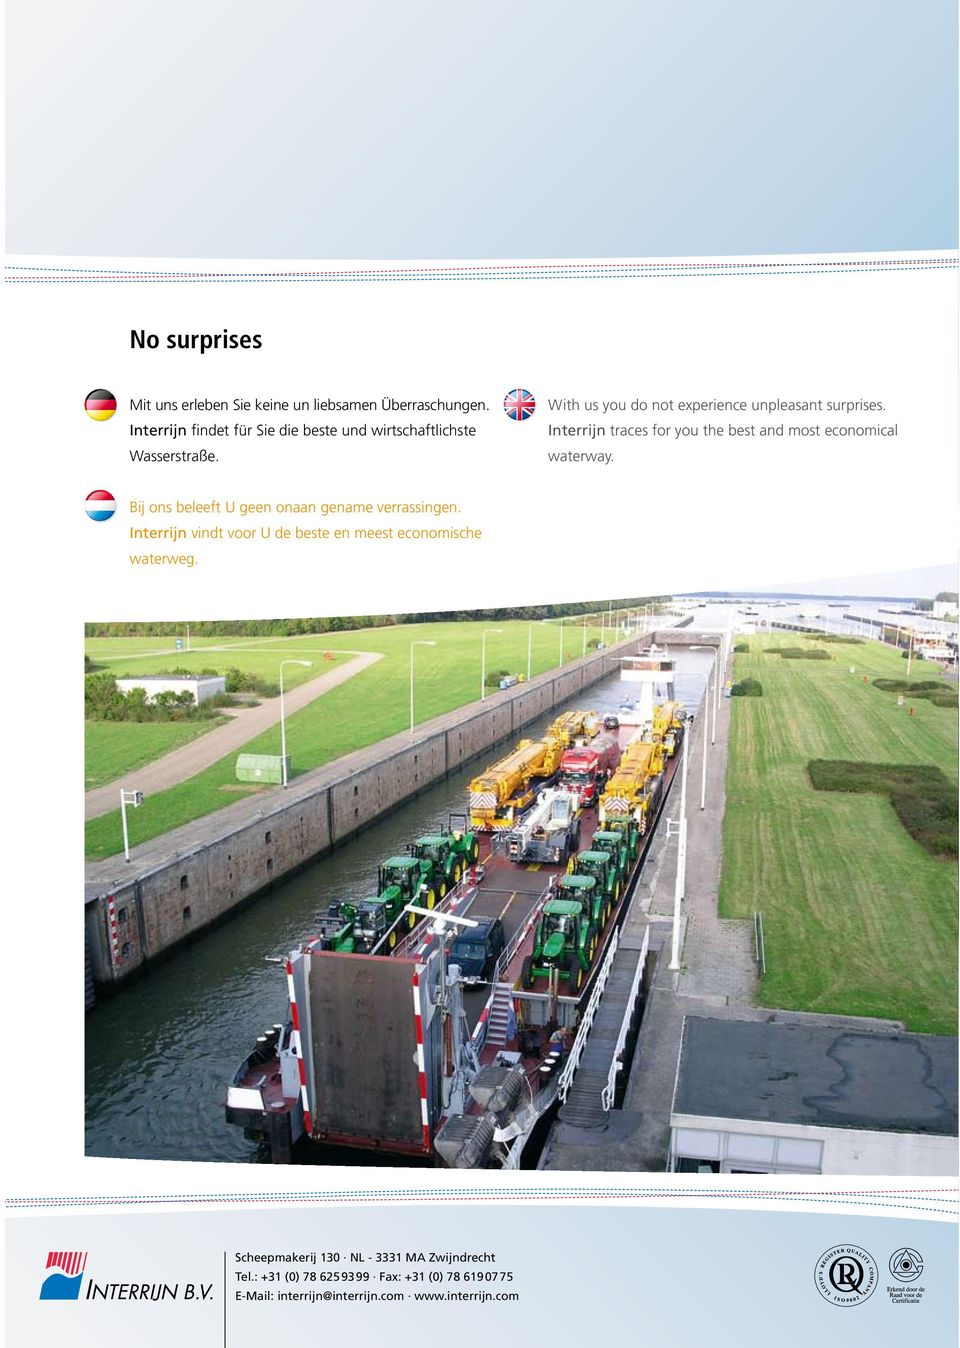 Interrijn traces for you the best and most economical waterway. Bij ons beleeft U geen onaan gename verrassingen.